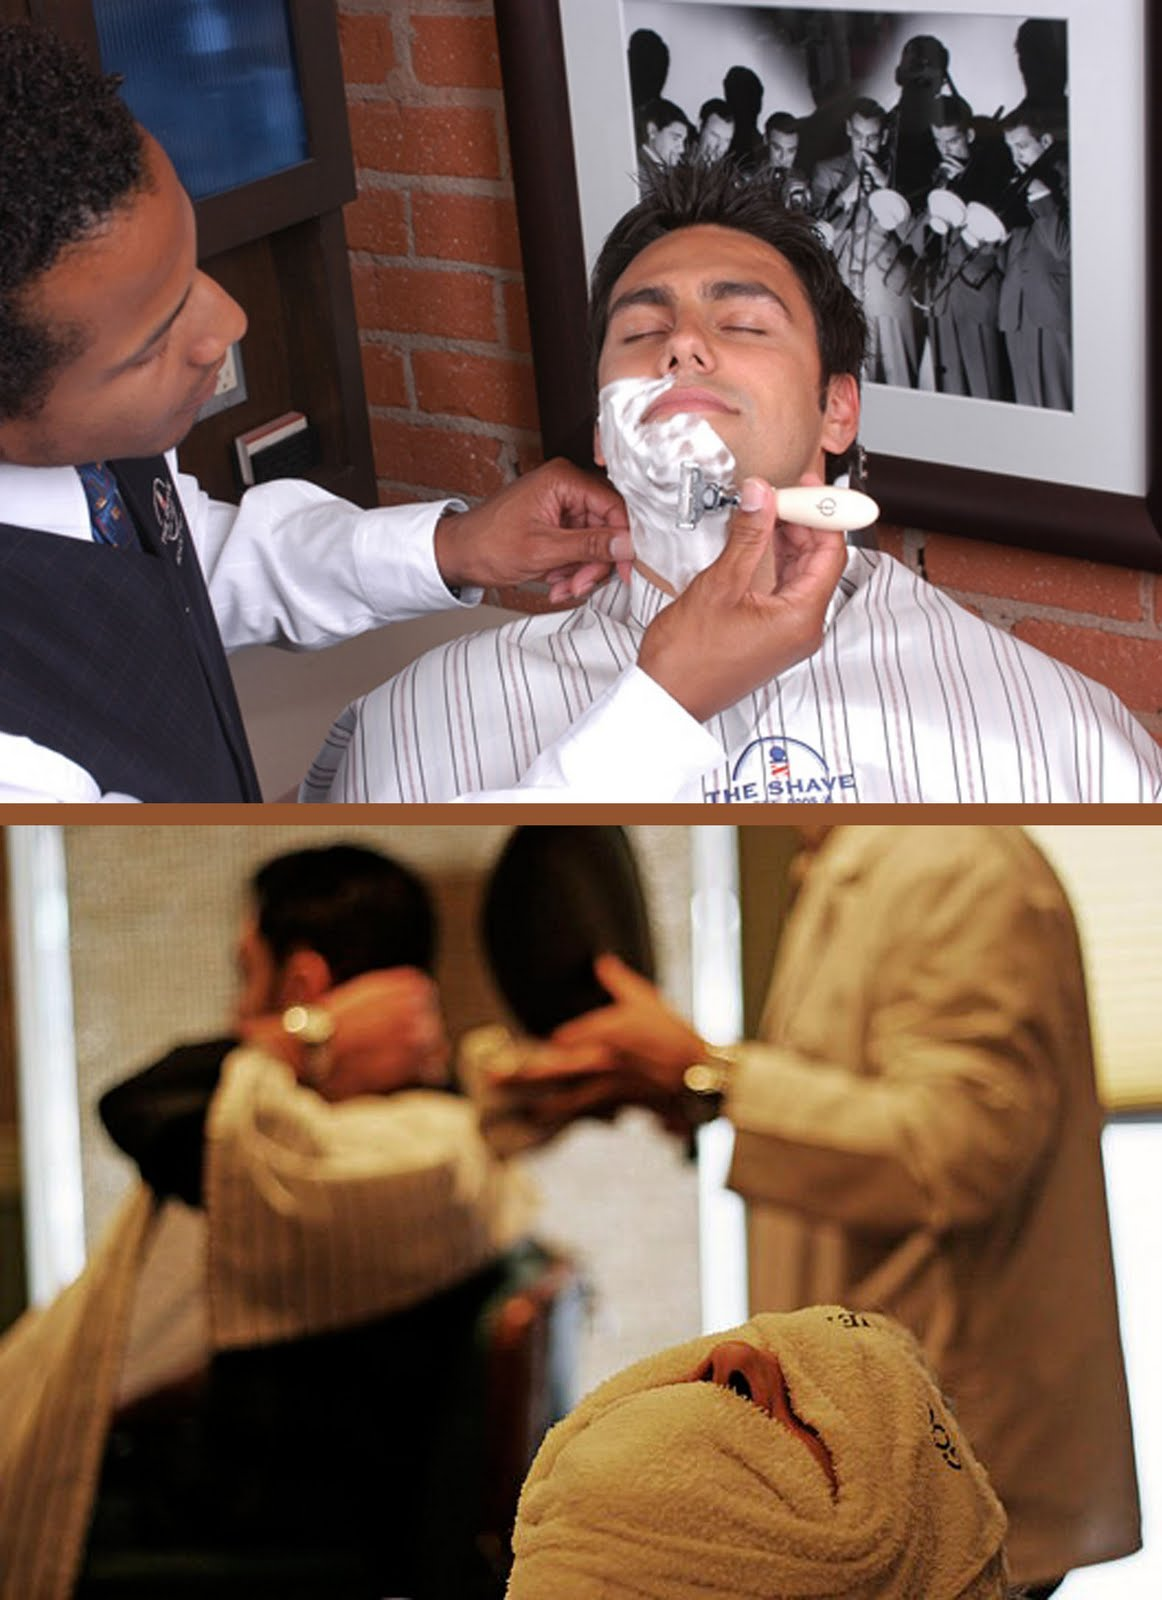 Barber Services : Food Fun and Love: Barber Shops